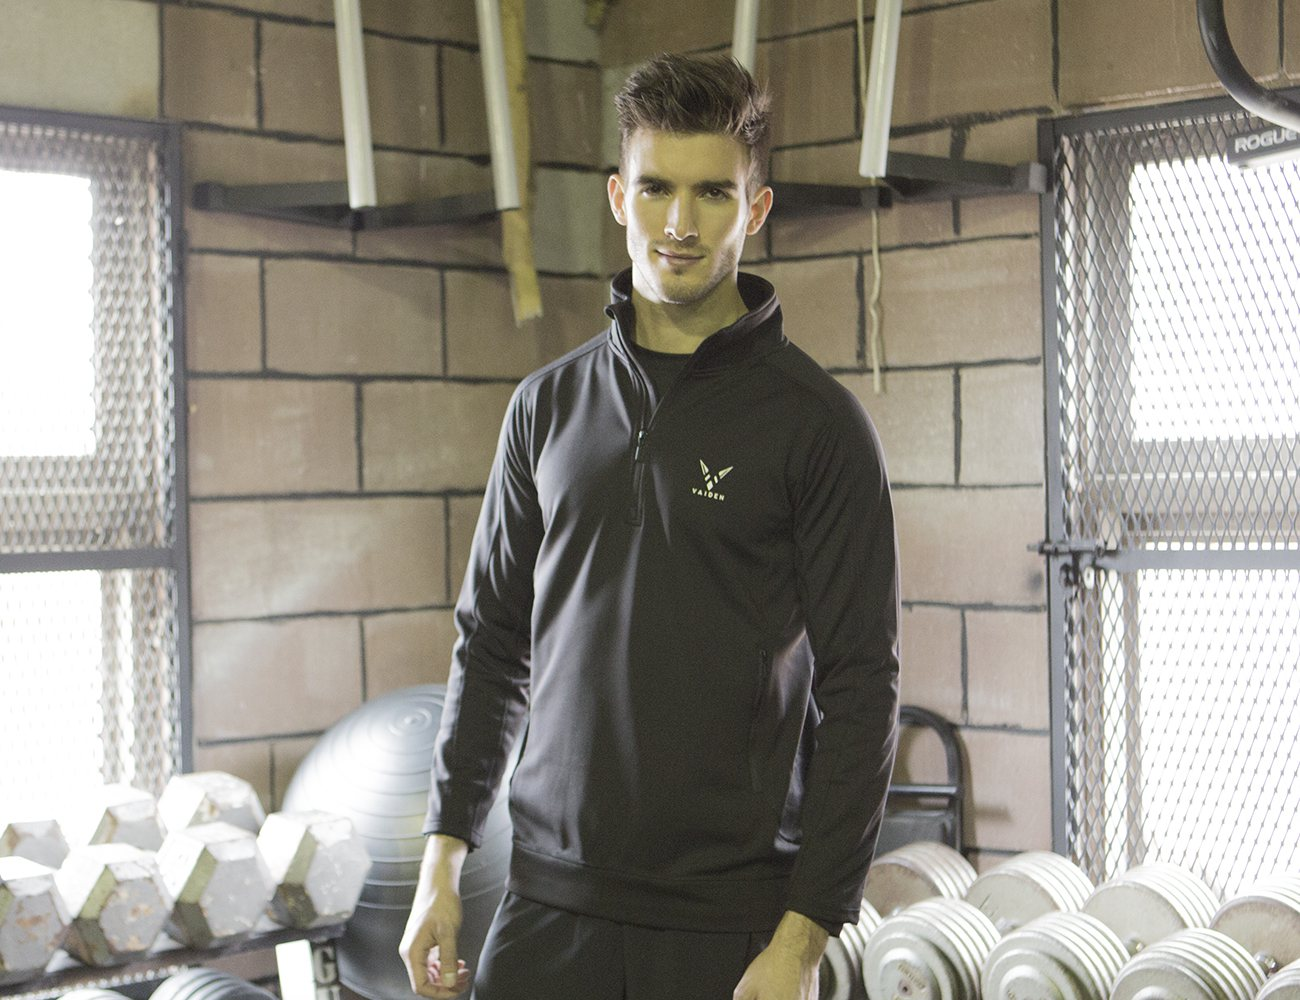 Vaiden Astronaut Workout Apparel